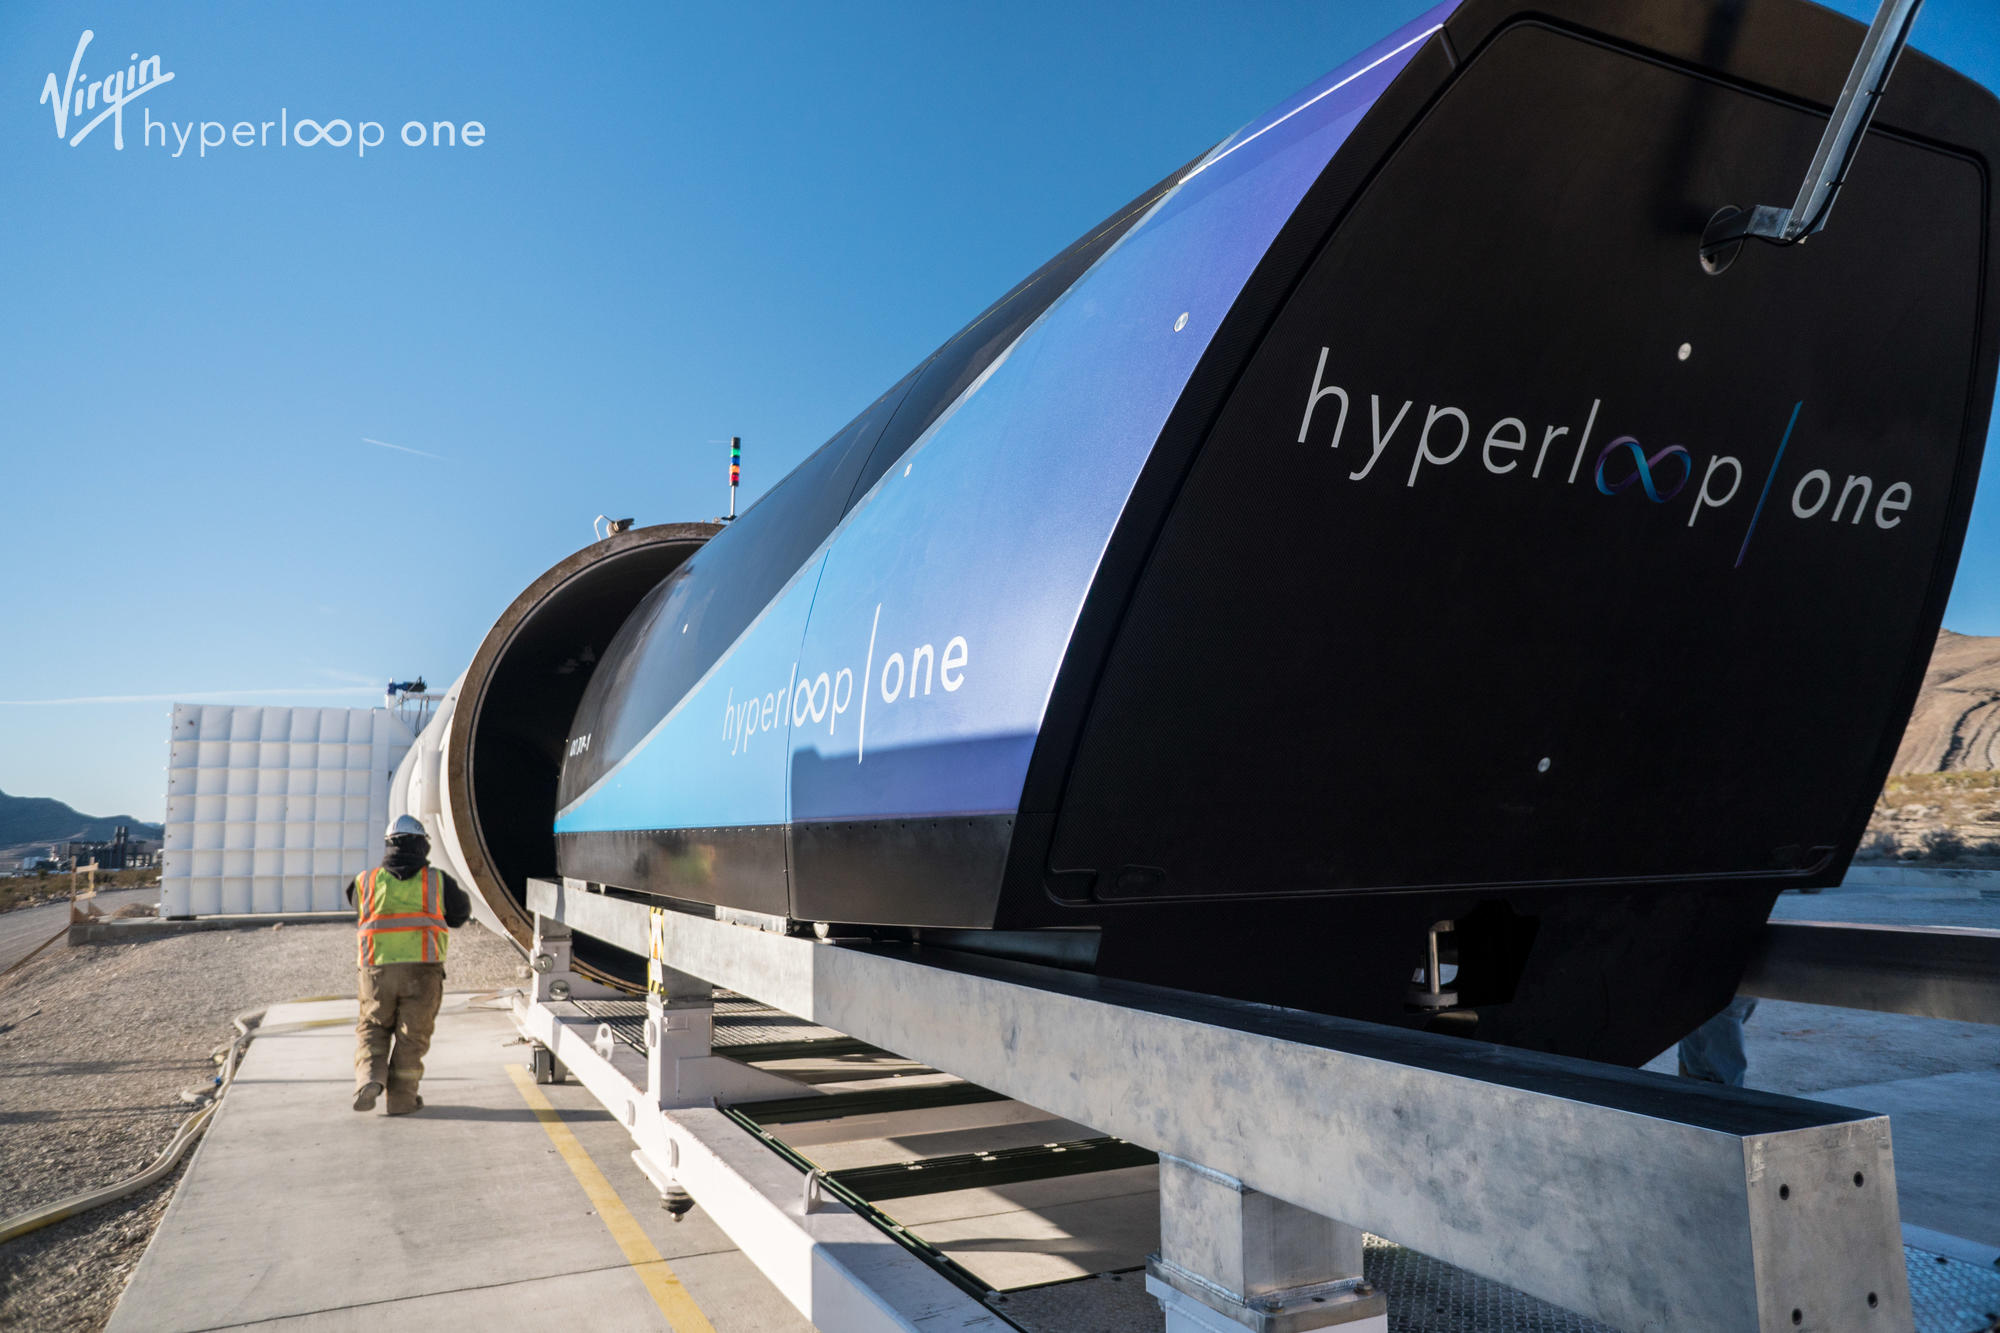 hyperloop one,hyperloop seminar ppt download, hyperloop train seminar ppt download, hyperloop final report, hyperloop small ppt, hyperloop seminar report pdf download free, hyperloop powerpoint presentation download, presentation on hyperloop transportation, literature review on hyperloop,hyperloop,virgin hyperloop one,hyperloop test,hyperloop train,hyperloop india,hyperloop pod,hyperloop one test,hyperloop one dubai,hyperloop one india,birgin hyperloop one,hyperloop one in india,mumbai pune hyperloop one,virgin hyperloop one test,virgin hyperloop one dubai,virgin hyperloop one india,hyperloop one project i india,elon musk,hyperloop transportation technologies